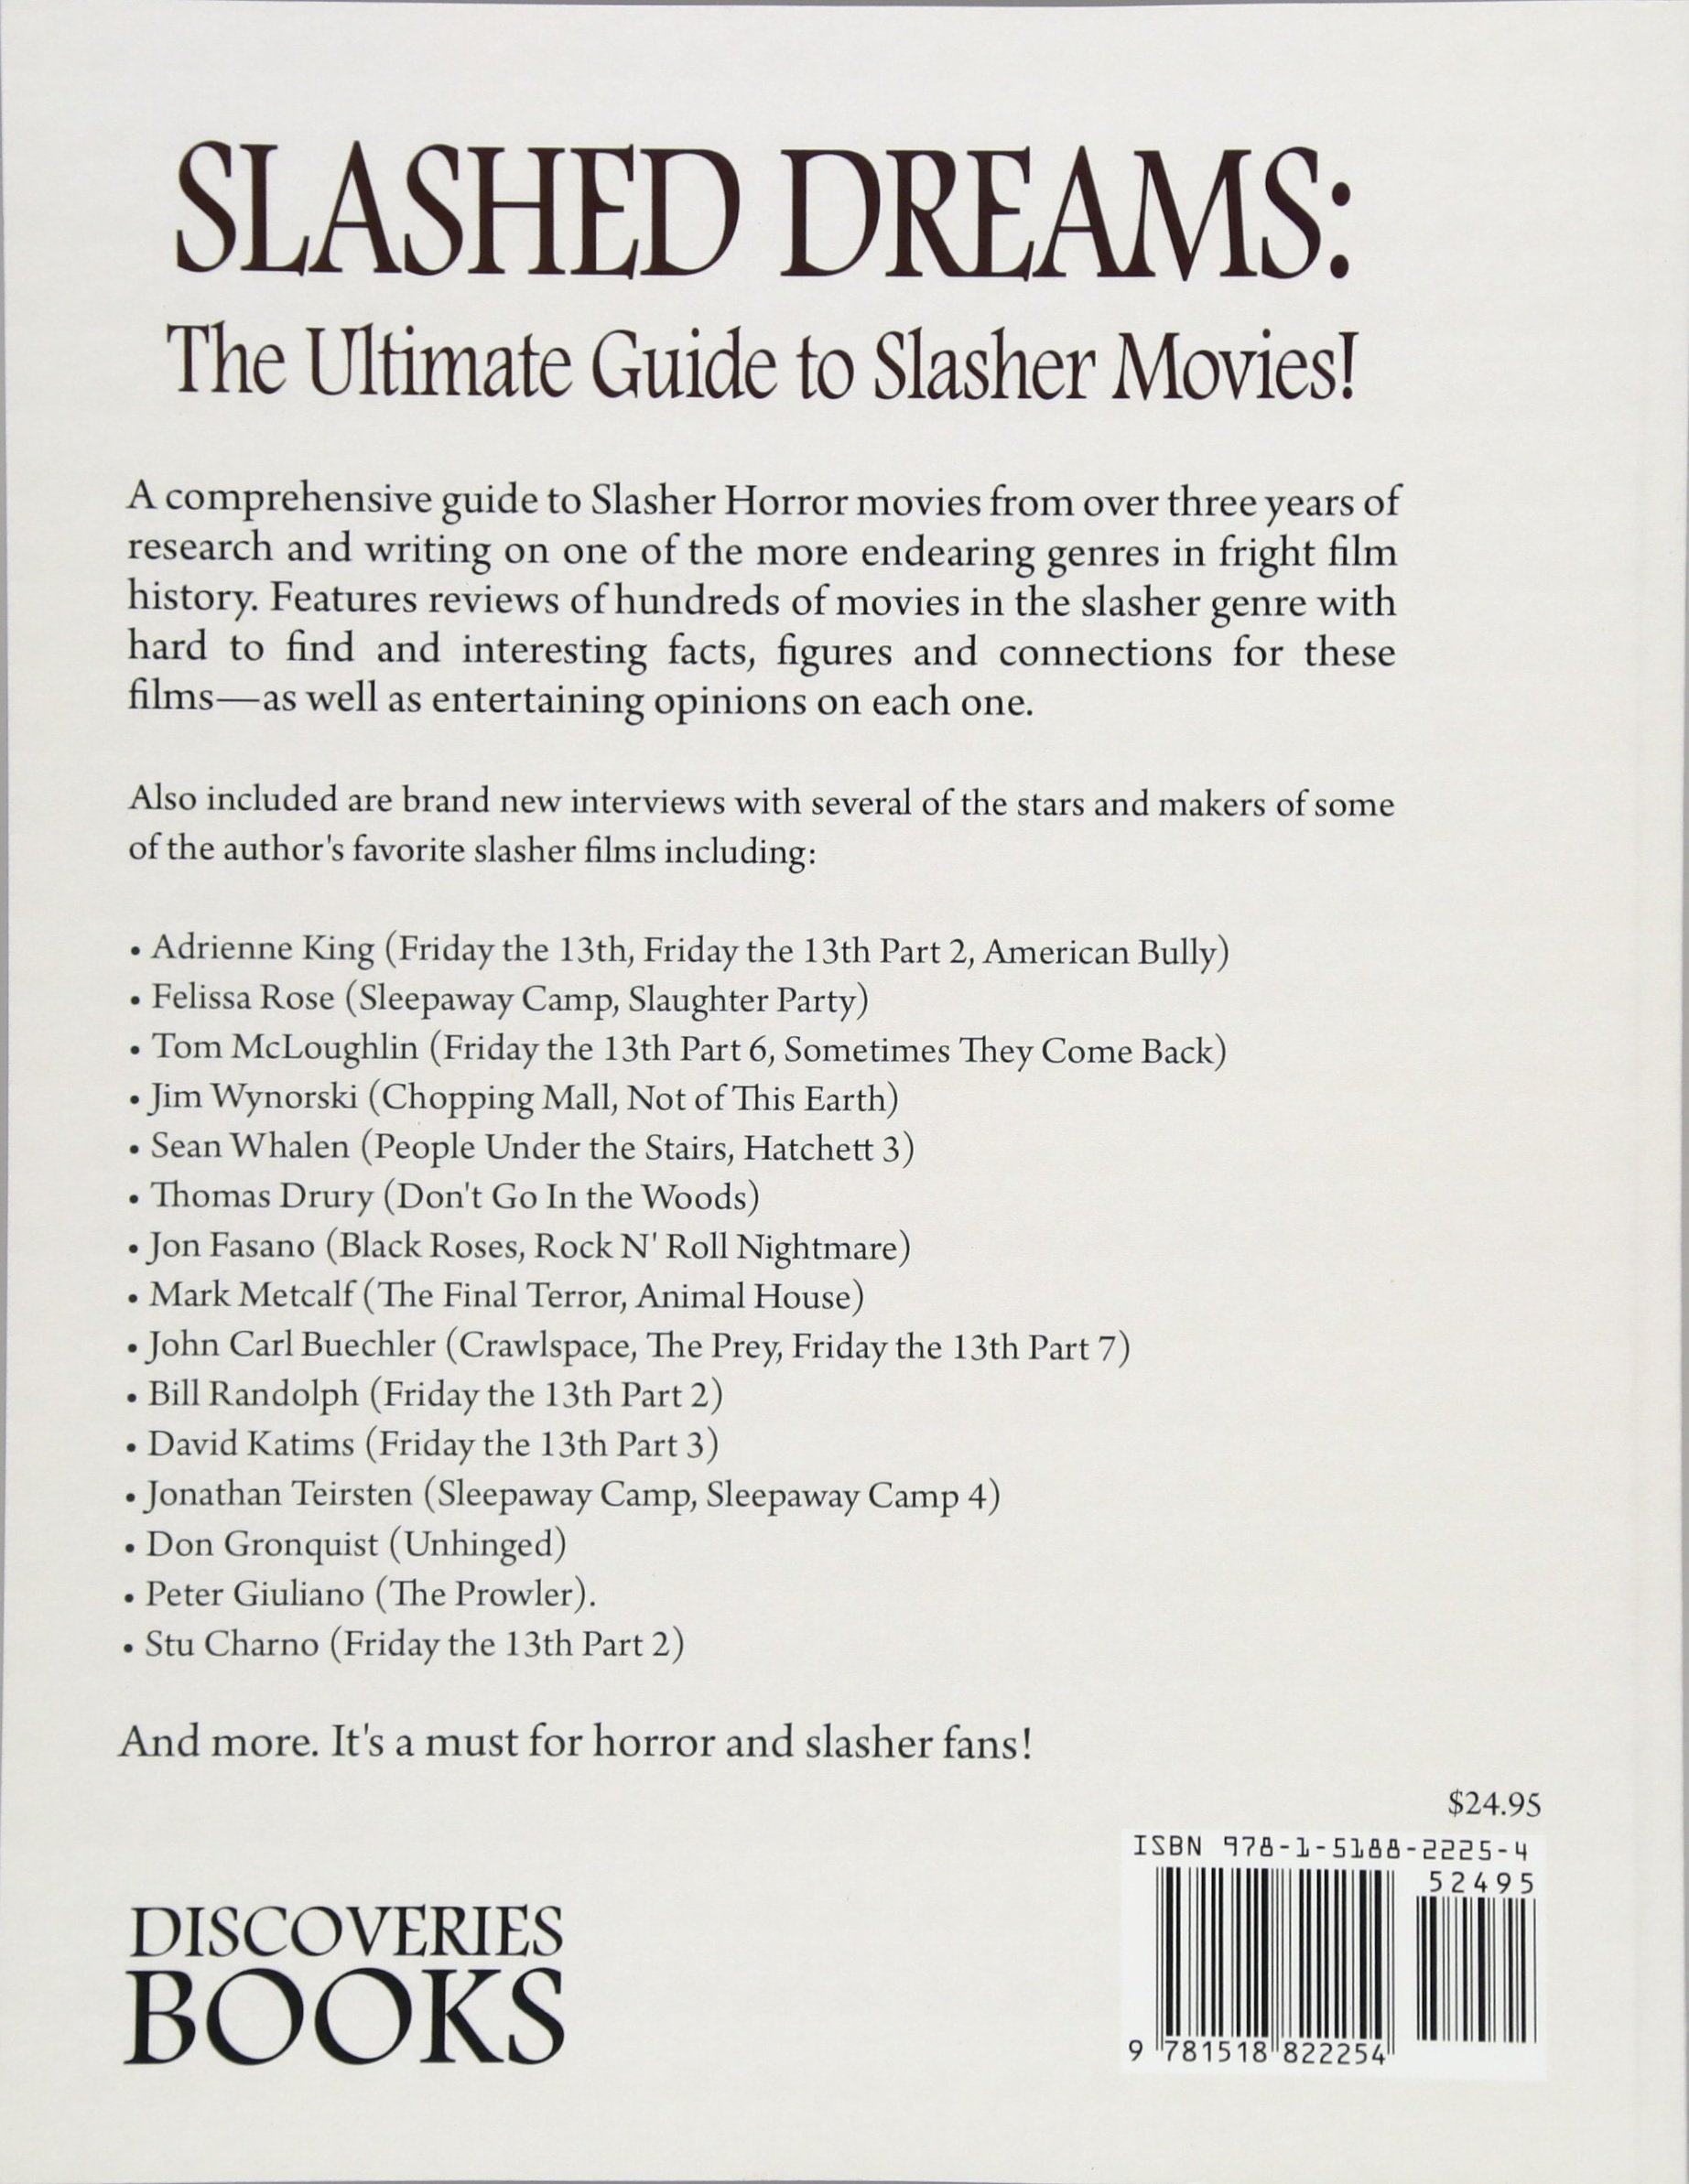 Slashed Dreams: The Ultimate Guide to Slasher Movies: Ronnie Angel:  9781518822254: Amazon.com: Books